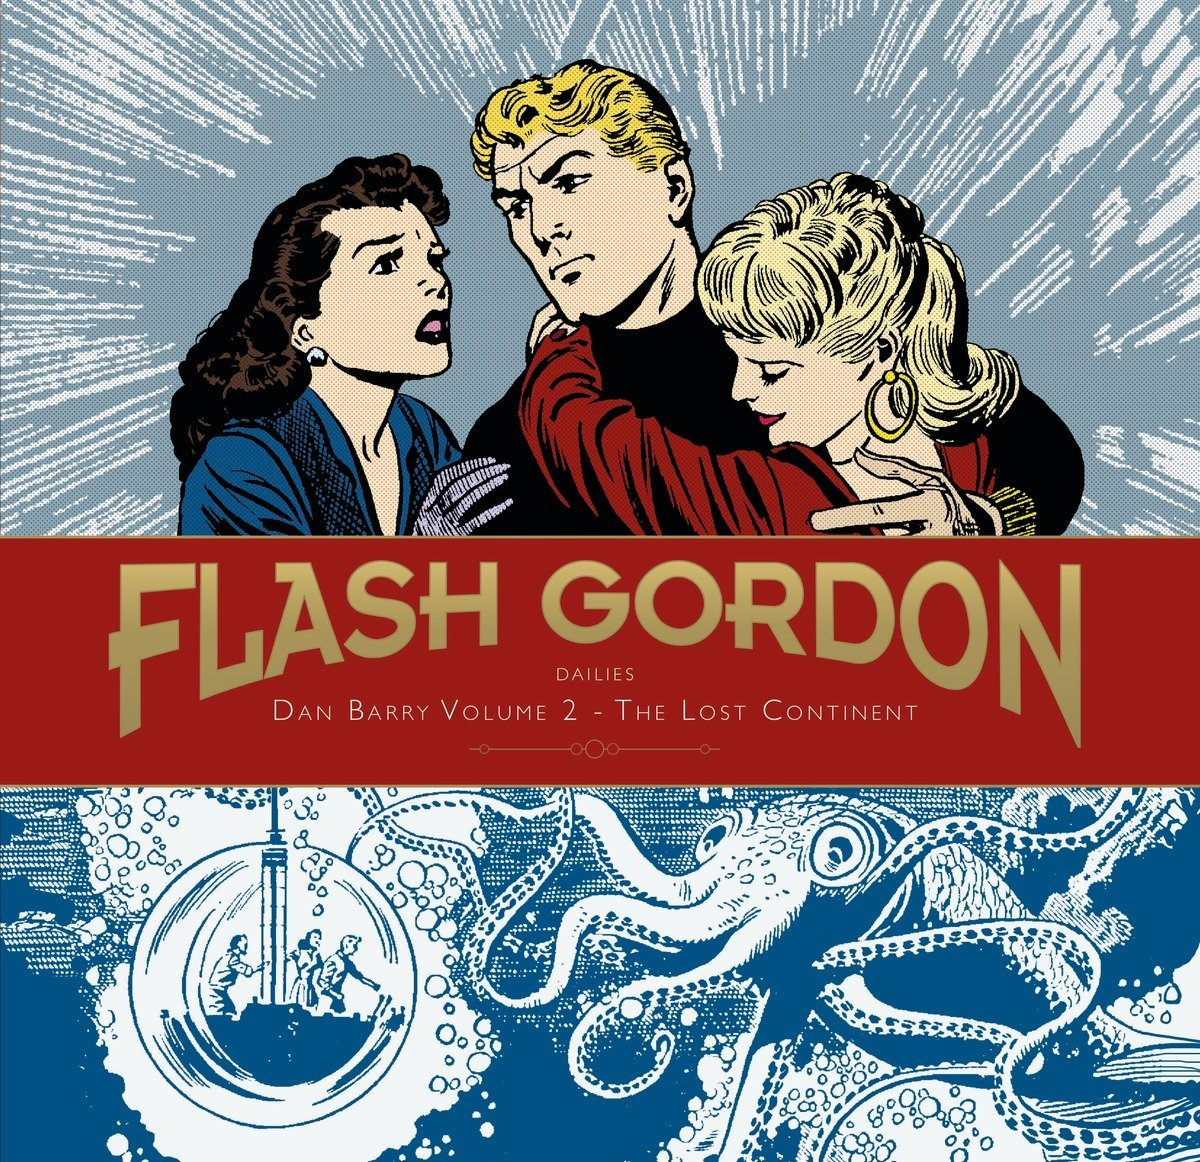 Flash Gordon Barry Continent Dailies product image